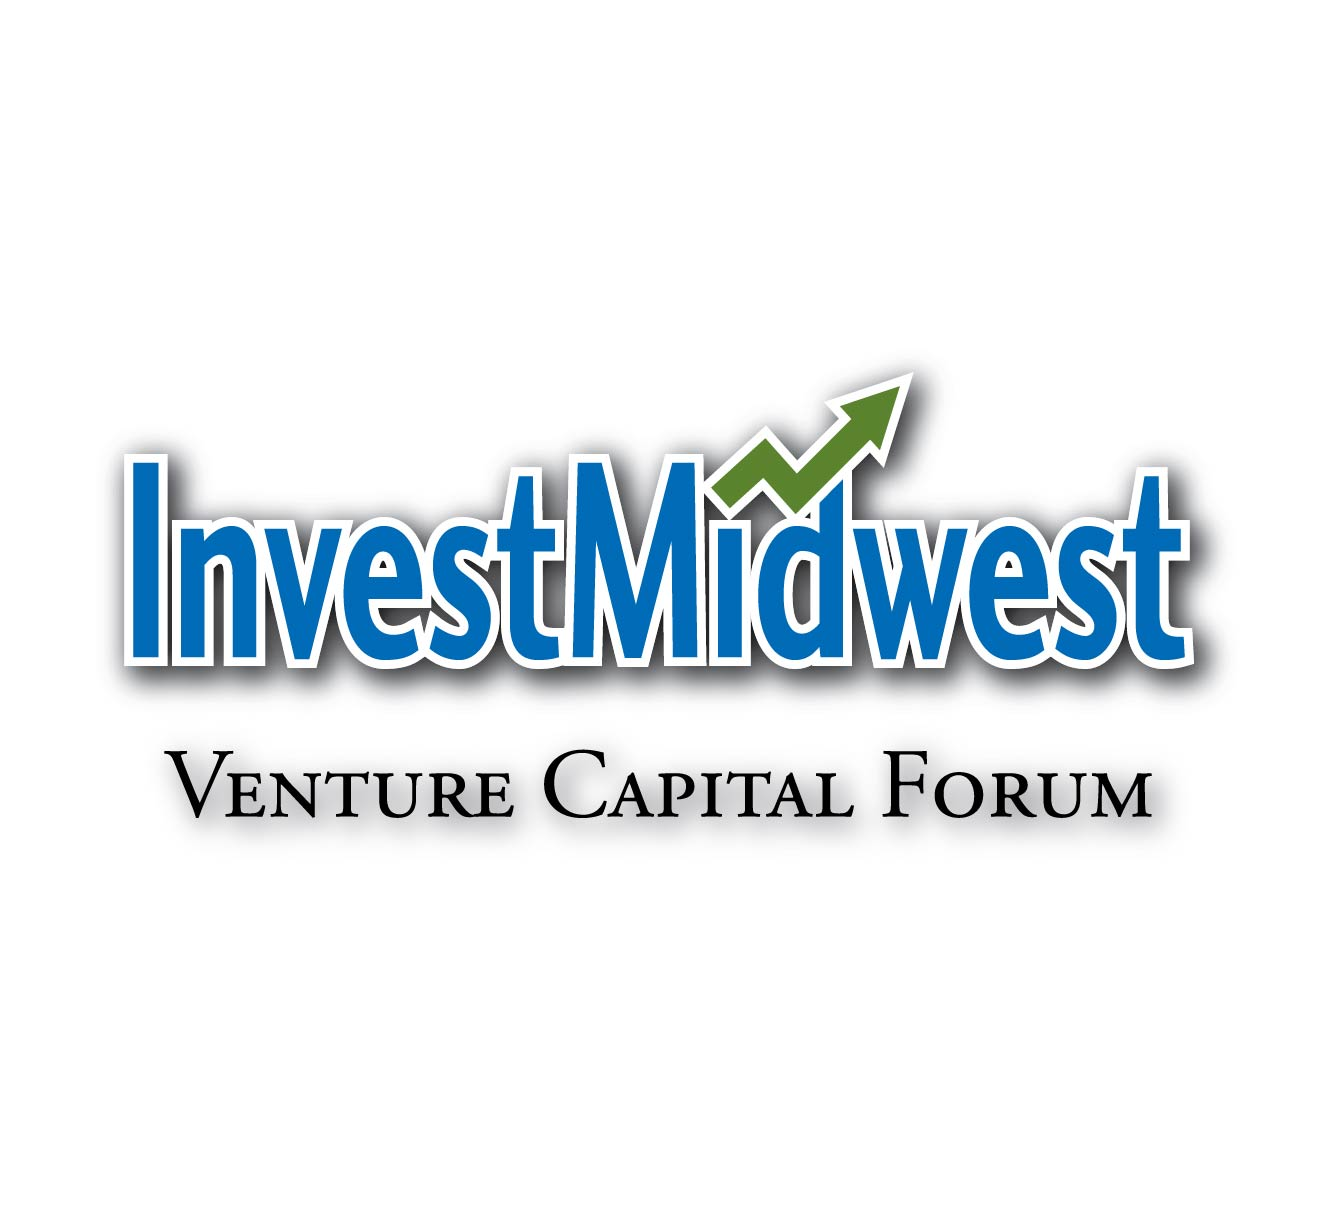 InvestMidwest